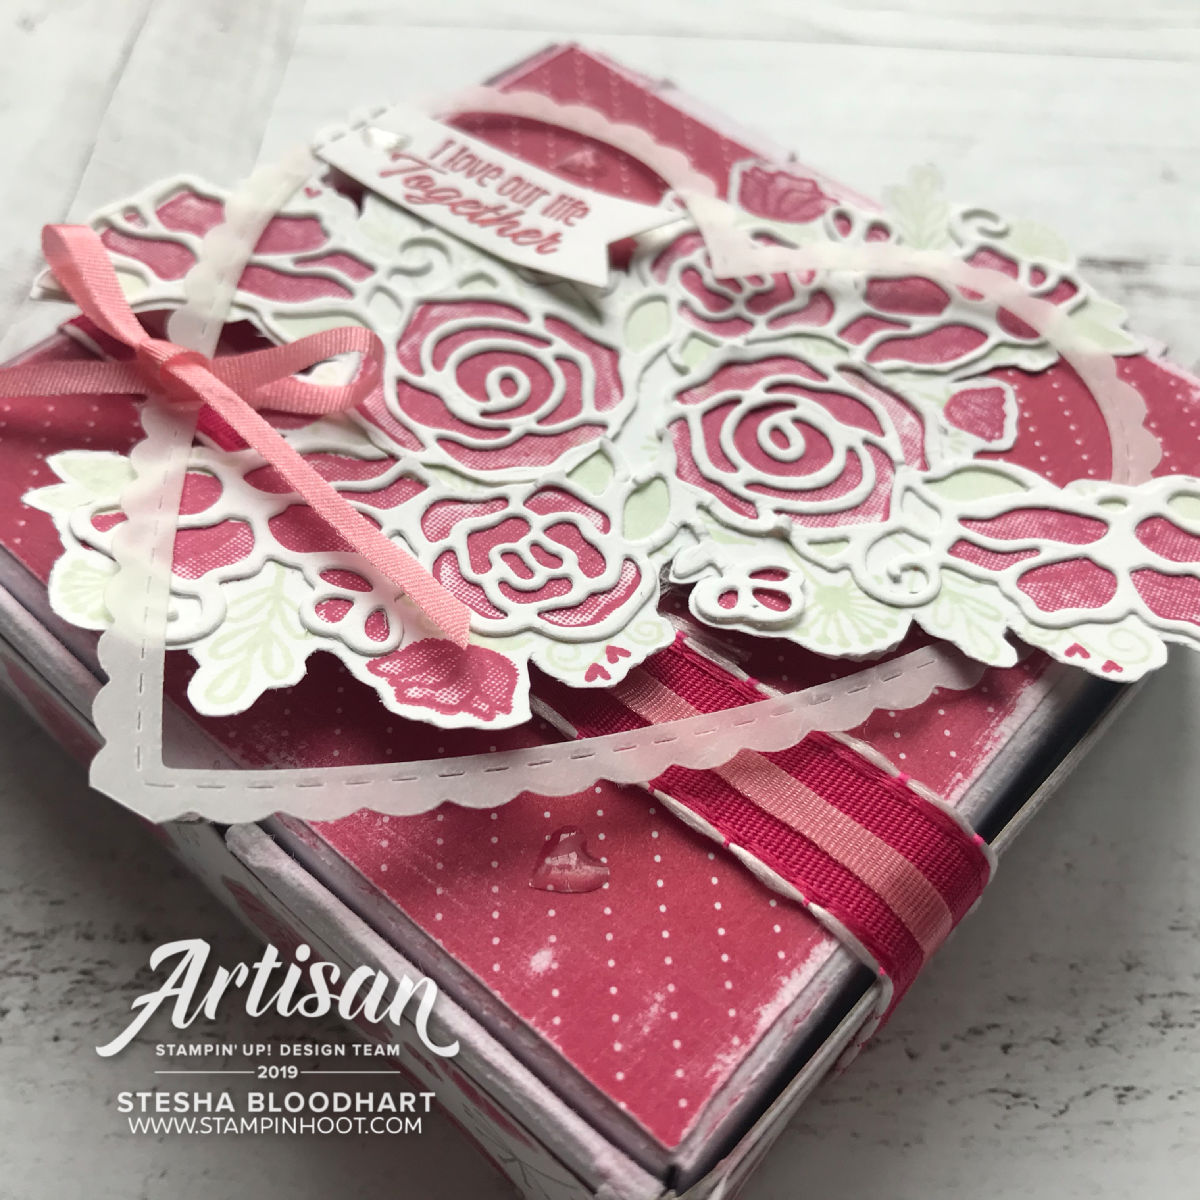 Forever Lovely Stampin' Up! 2019 Artisan Blog Hop!